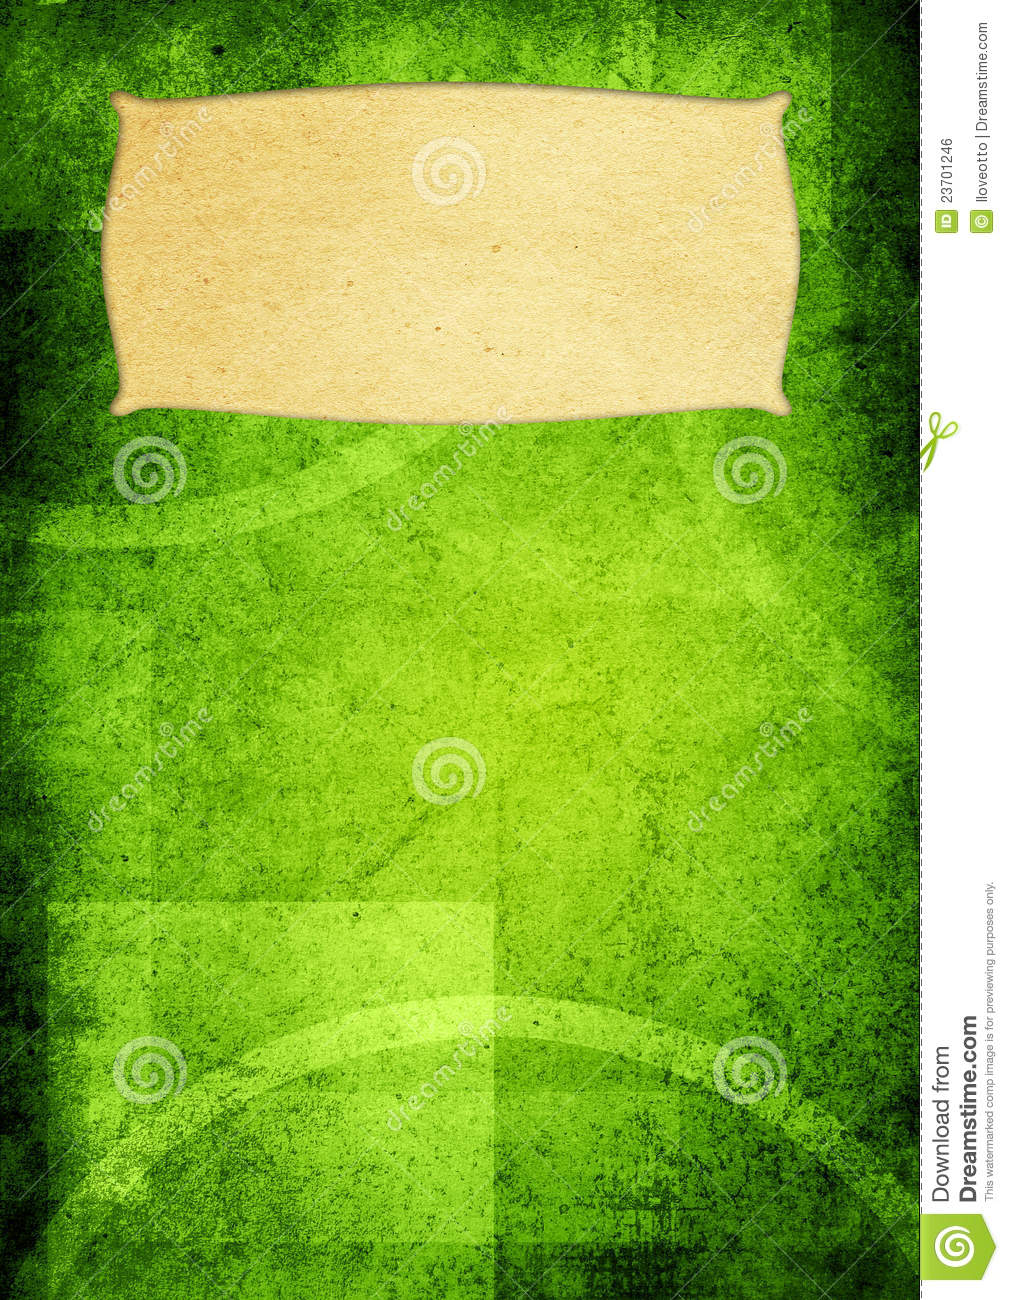 Photo Creative Backgrounds Book Cover : Backgrounds book cover royalty free stock image